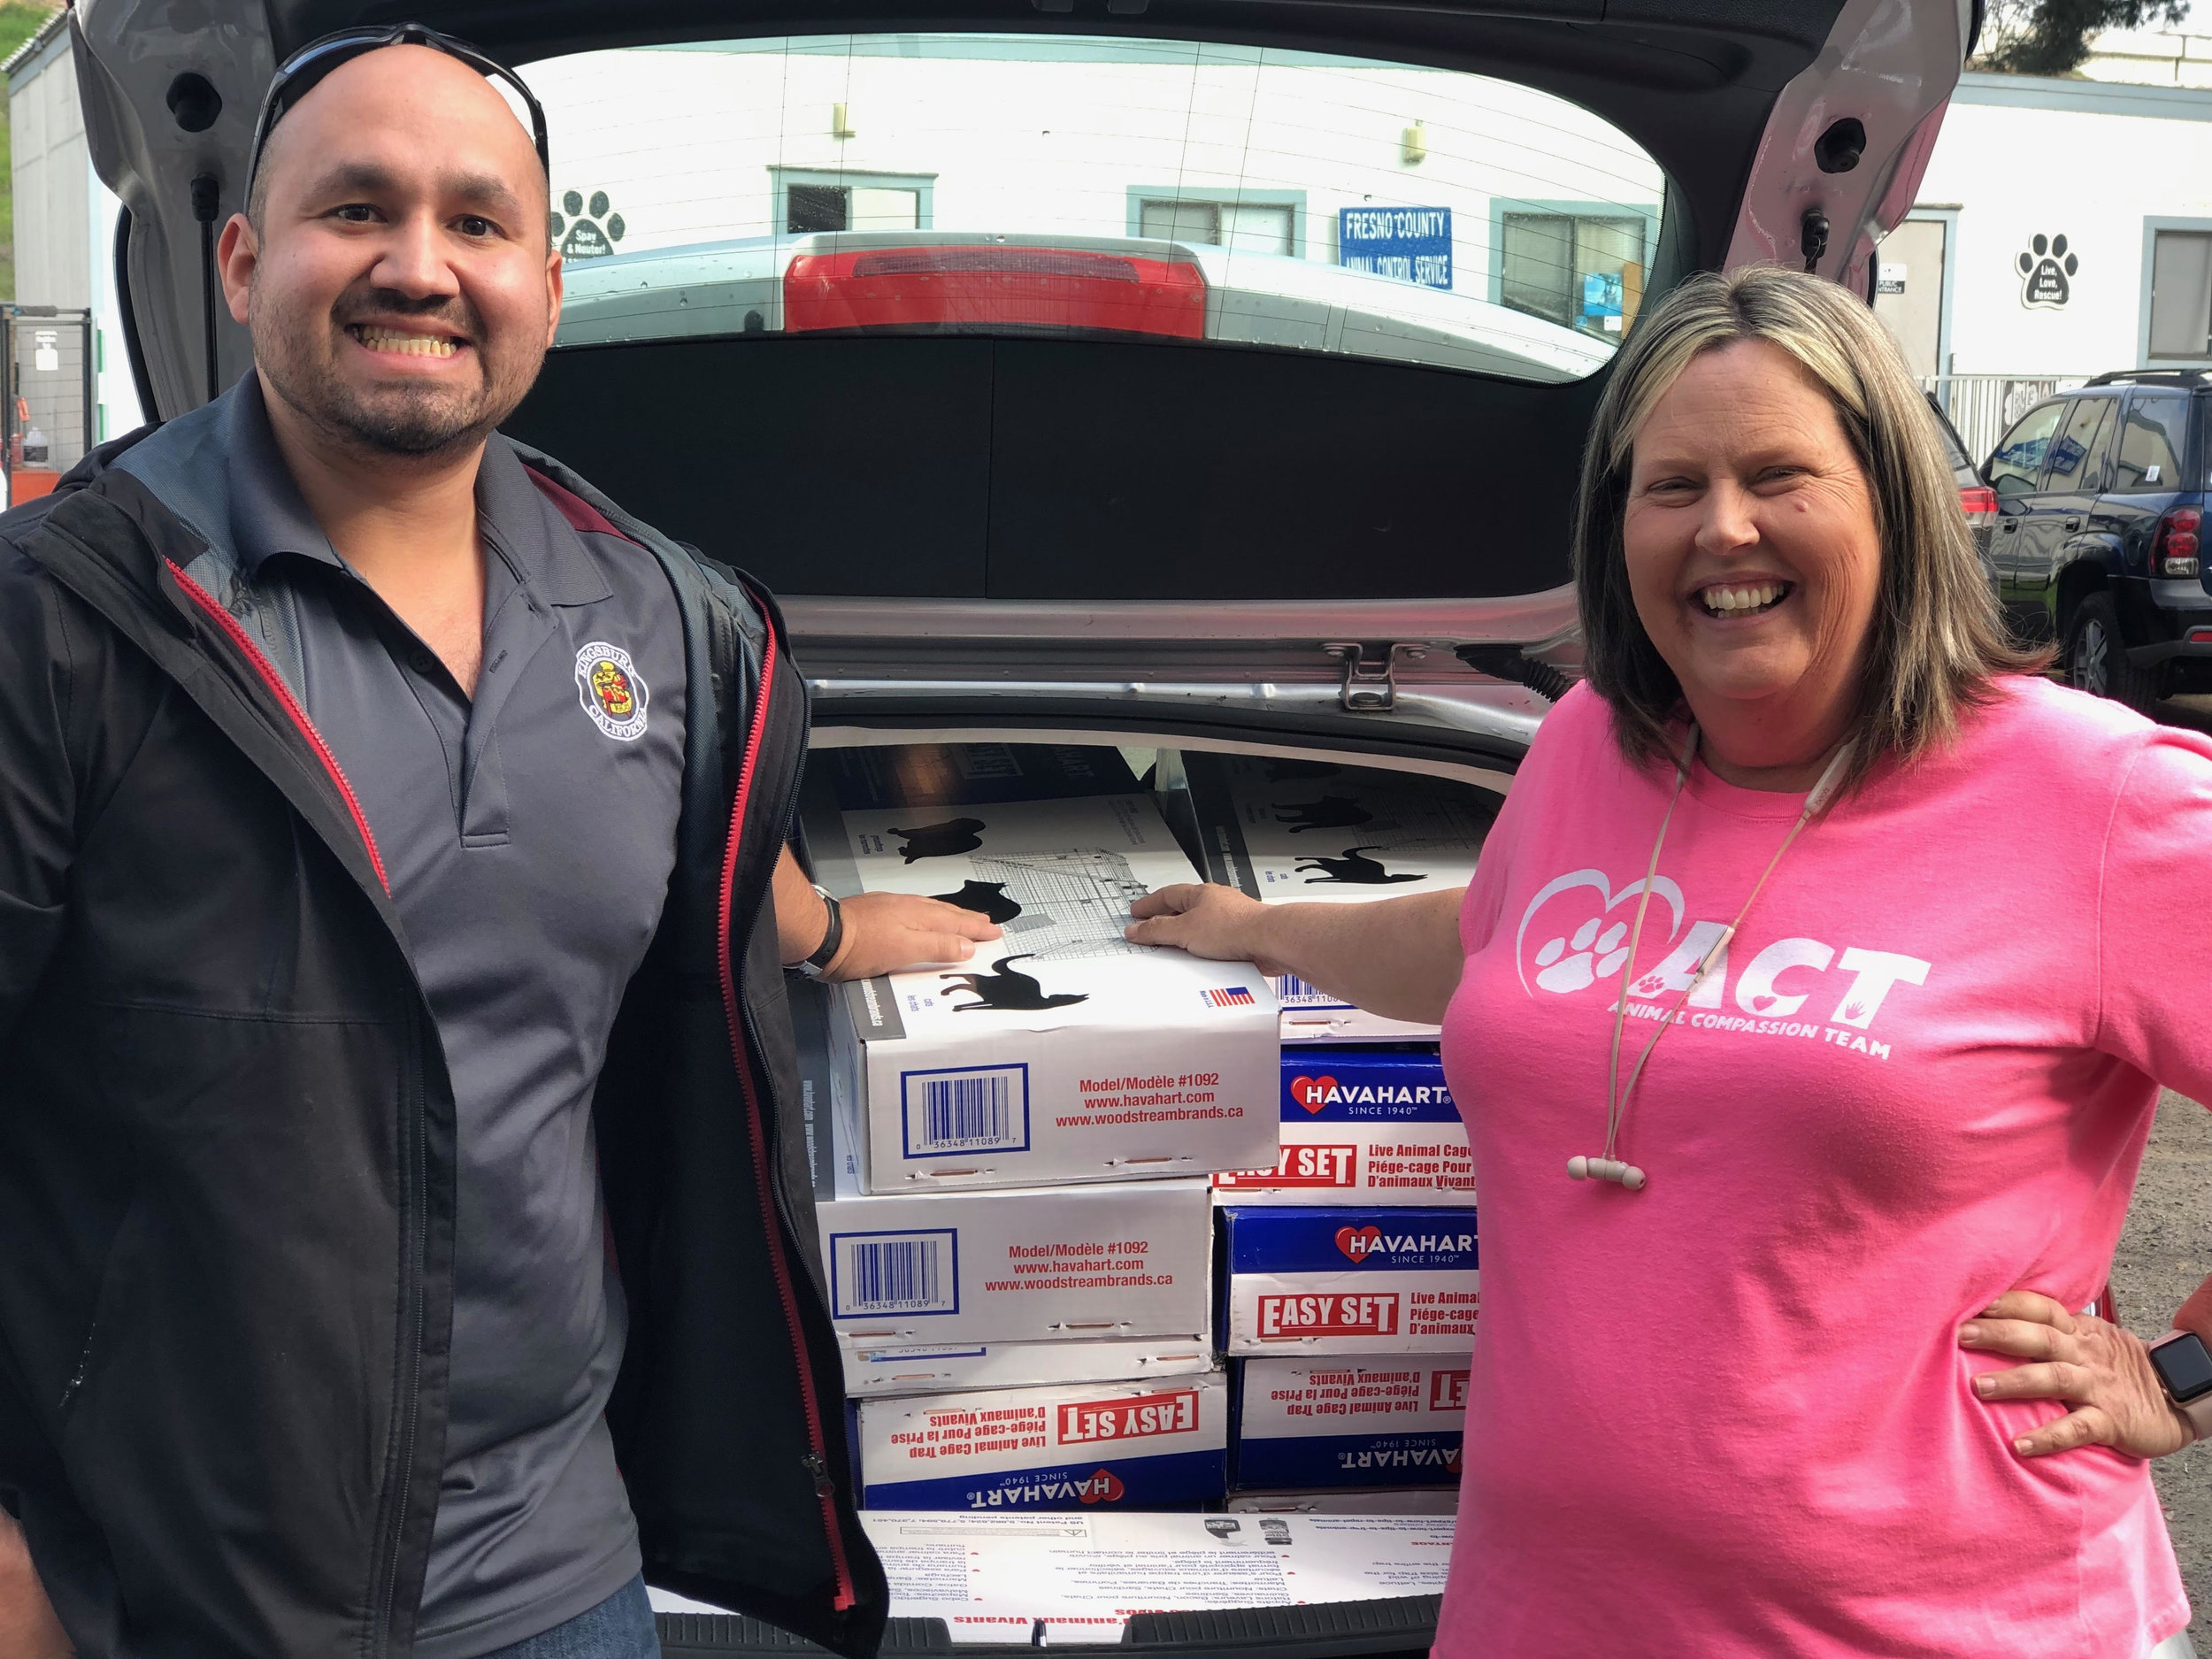 Pictured is Adam Castaneda, Community Services Director for the City of Kingsburg and Brenda Mitchell, President & Chief Life-saving Officer for Fresno Humane Animal Services posing with a full trunk of new cat traps bought with monies from a $5,000 grant gifted by an anonymous donor.